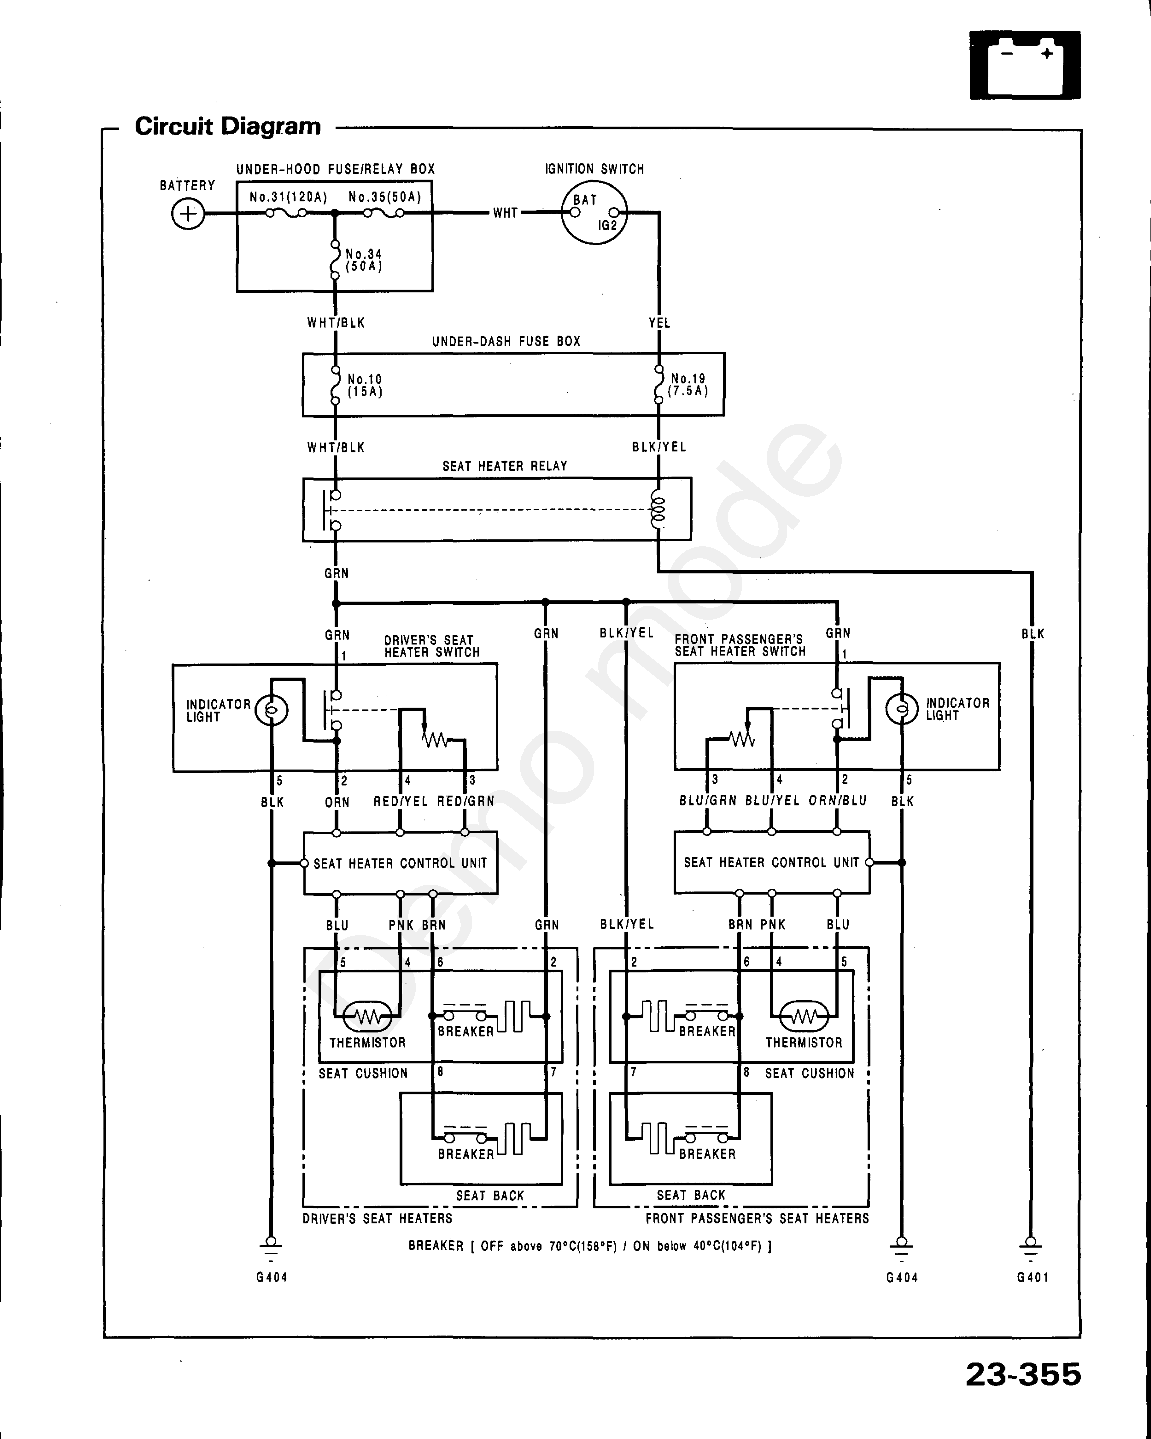 Related imag es to Wiring Diagram For 1991 Acura Legend